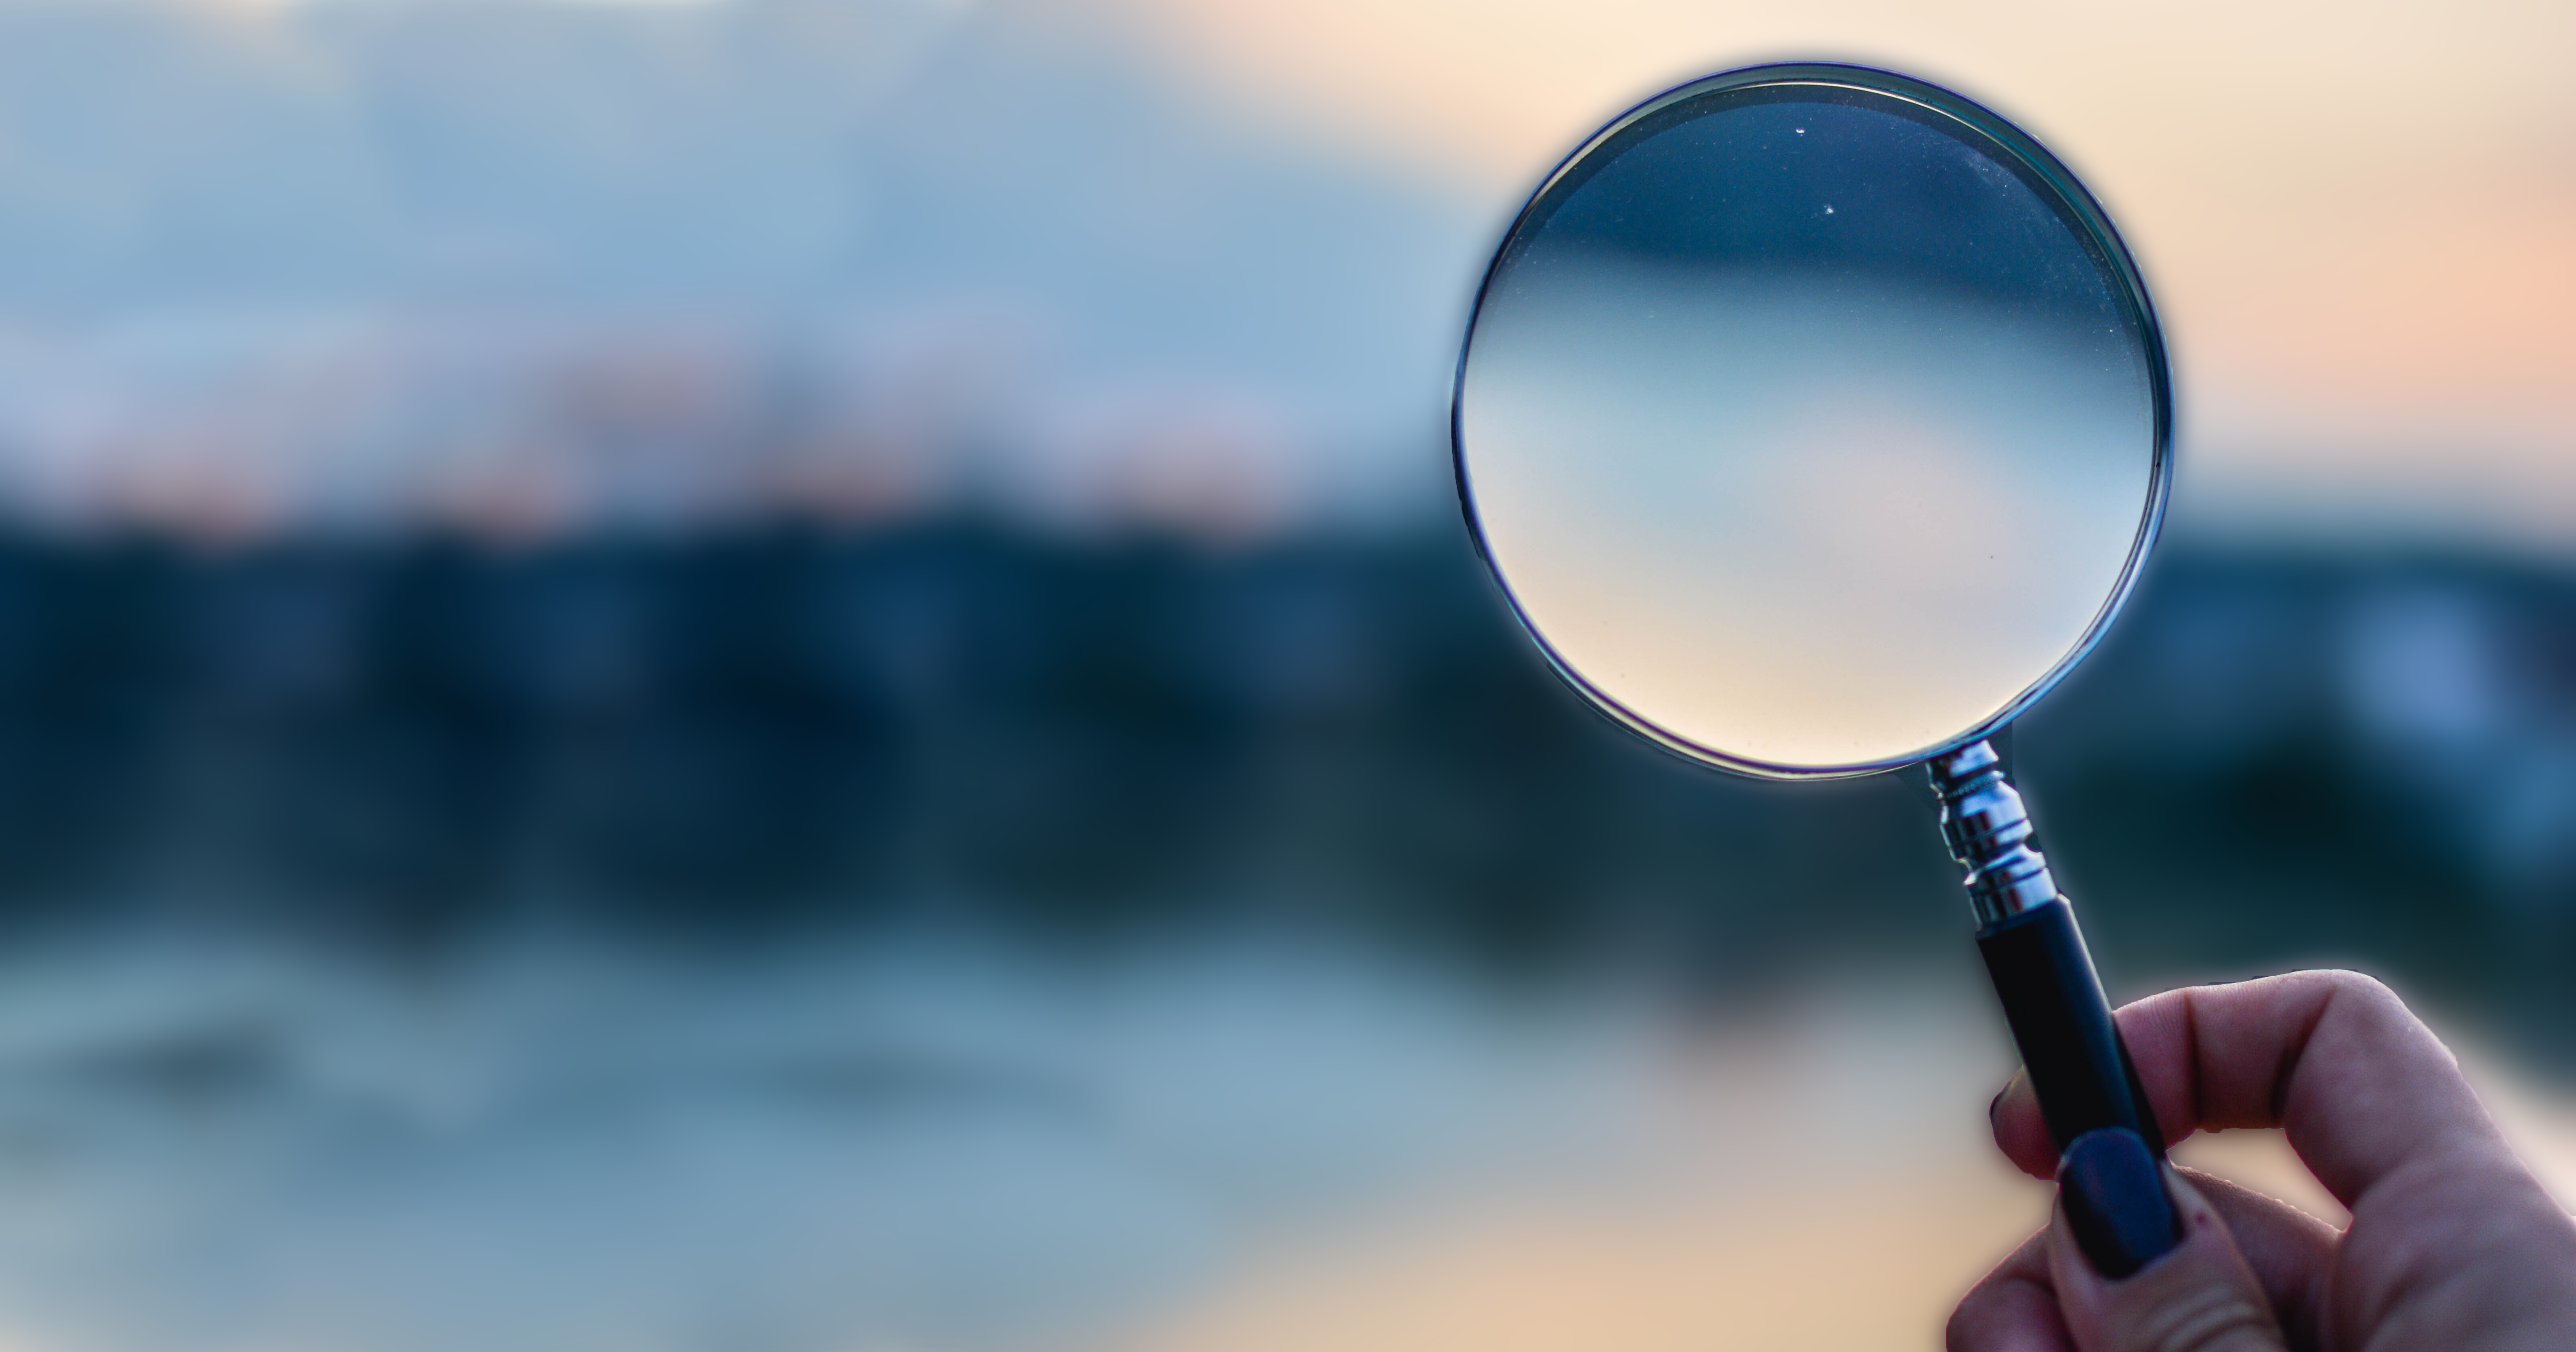 Picture of hand holding a magnifying glass in front of obscure environment